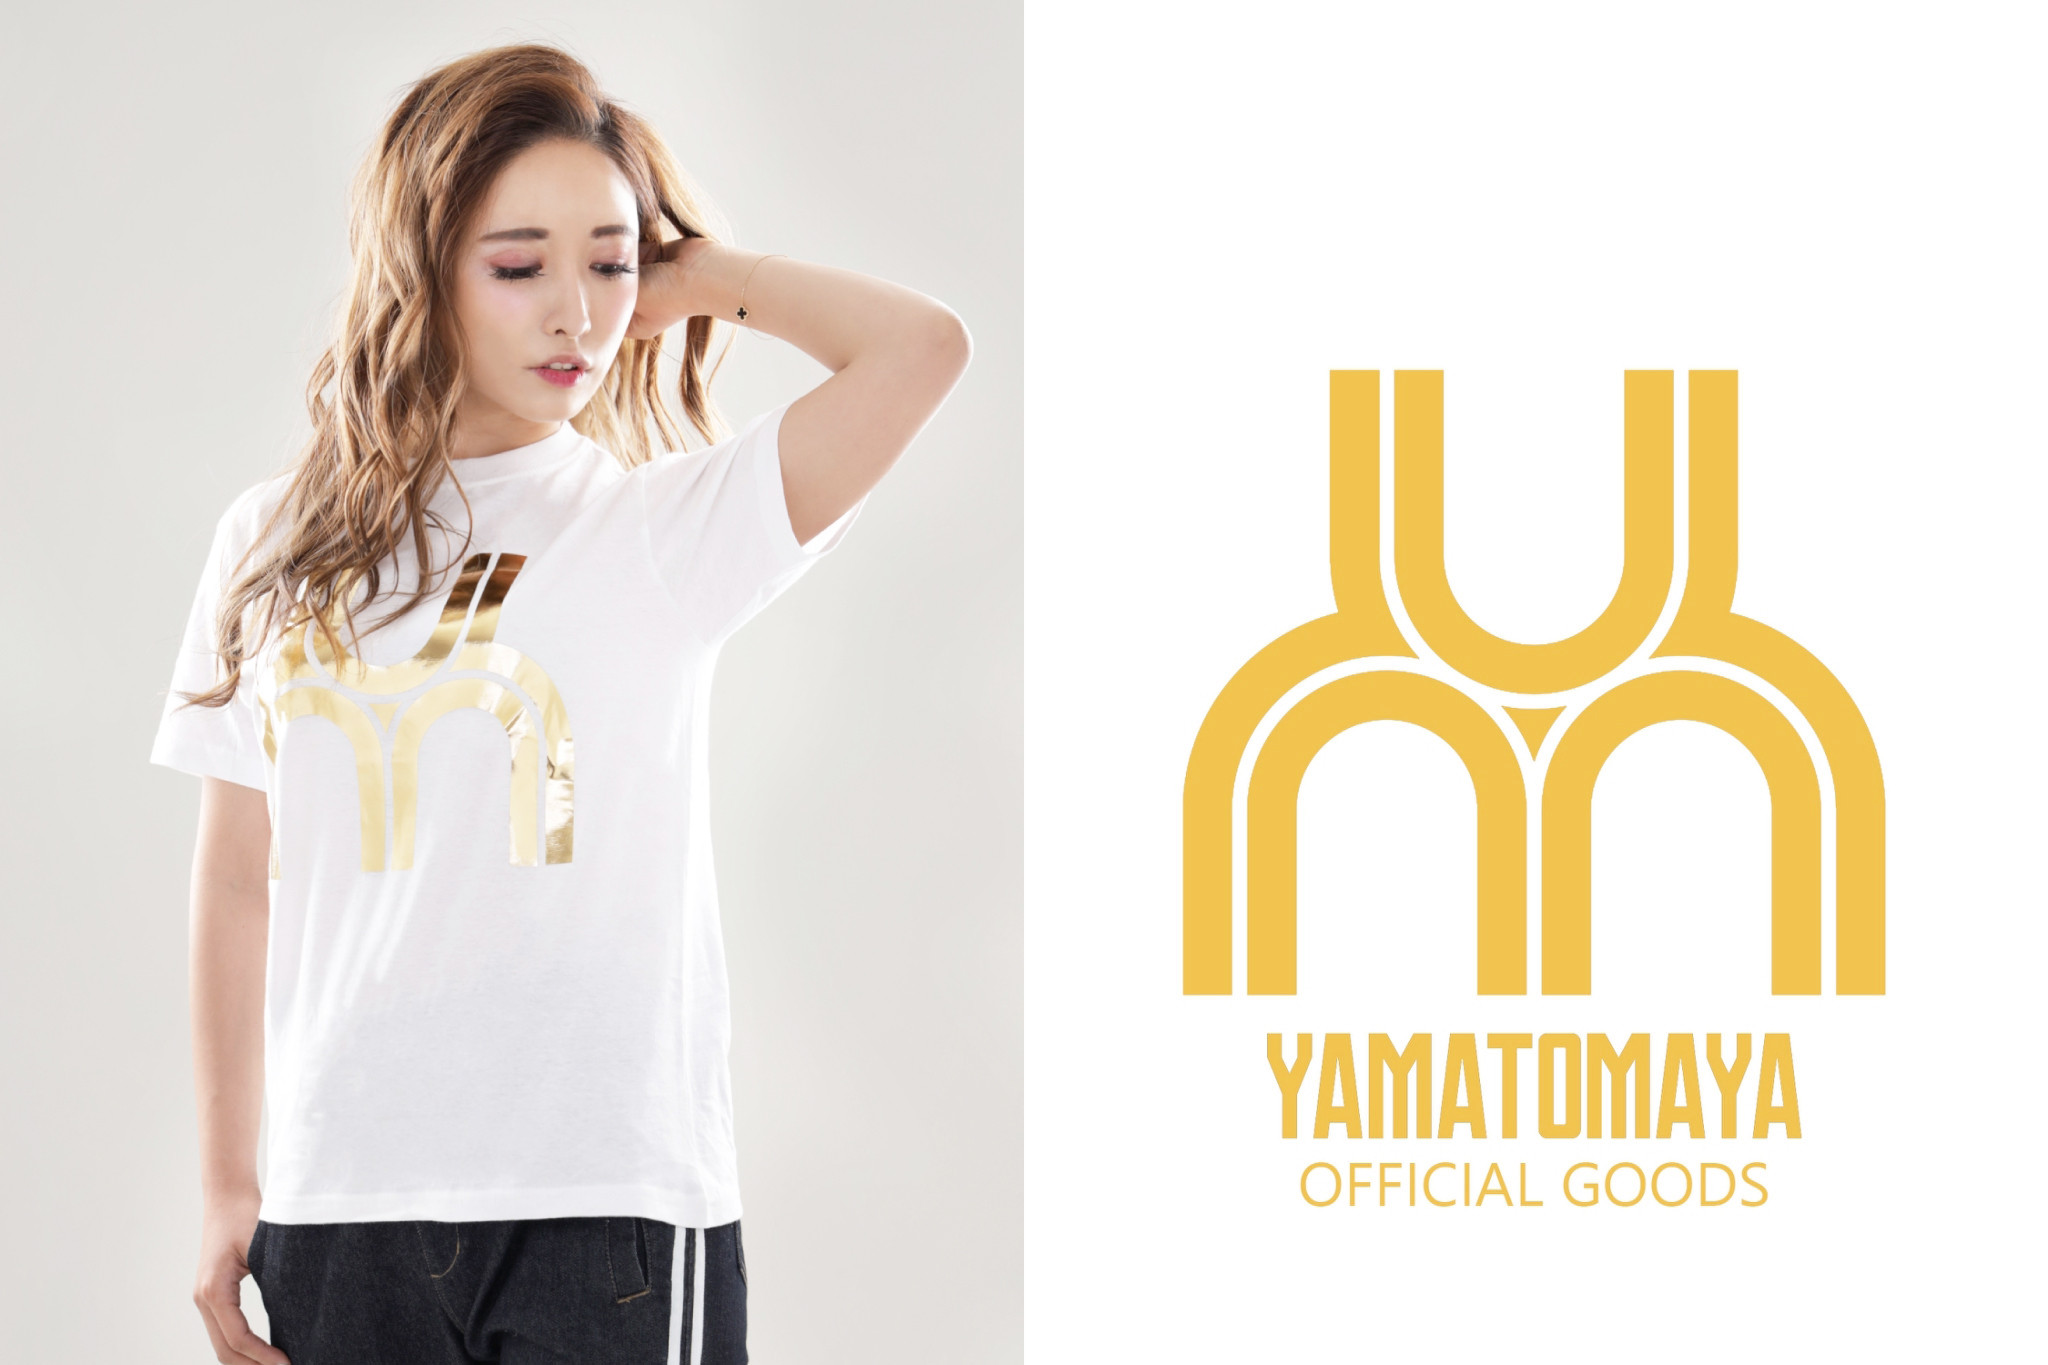 YAMATOMAYA OFFICIAL GOODS MERCH